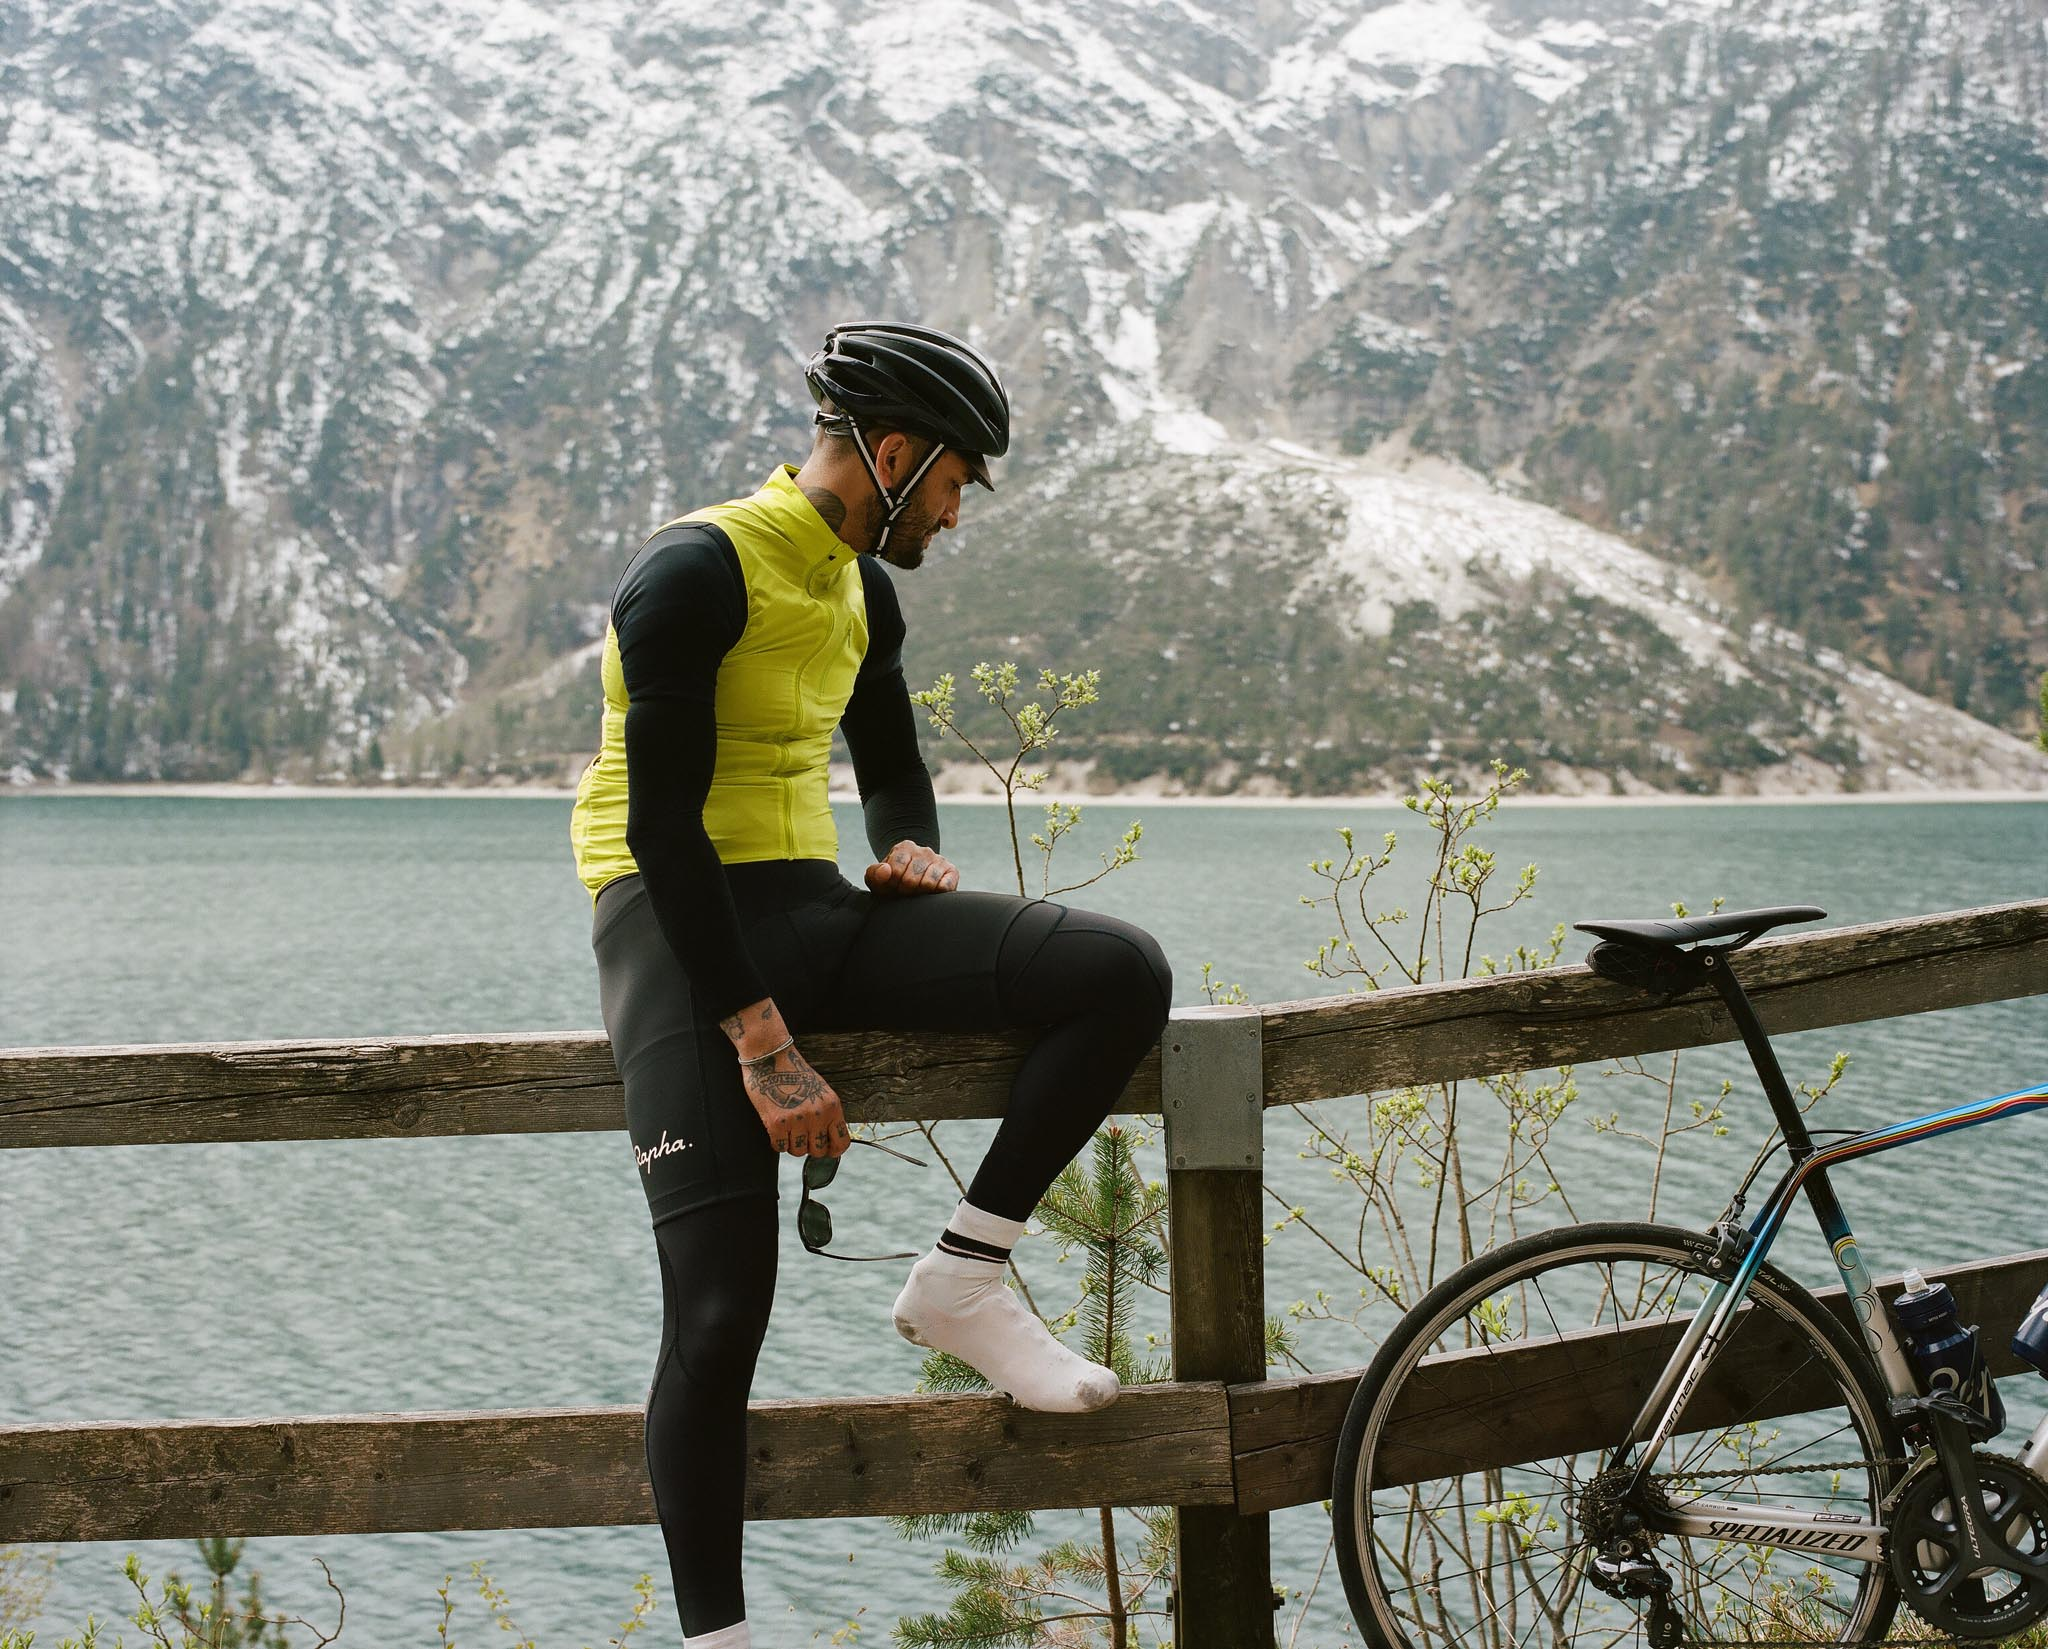 Rapha_2017_Tirol_George_Marshall_hires_042.jpg